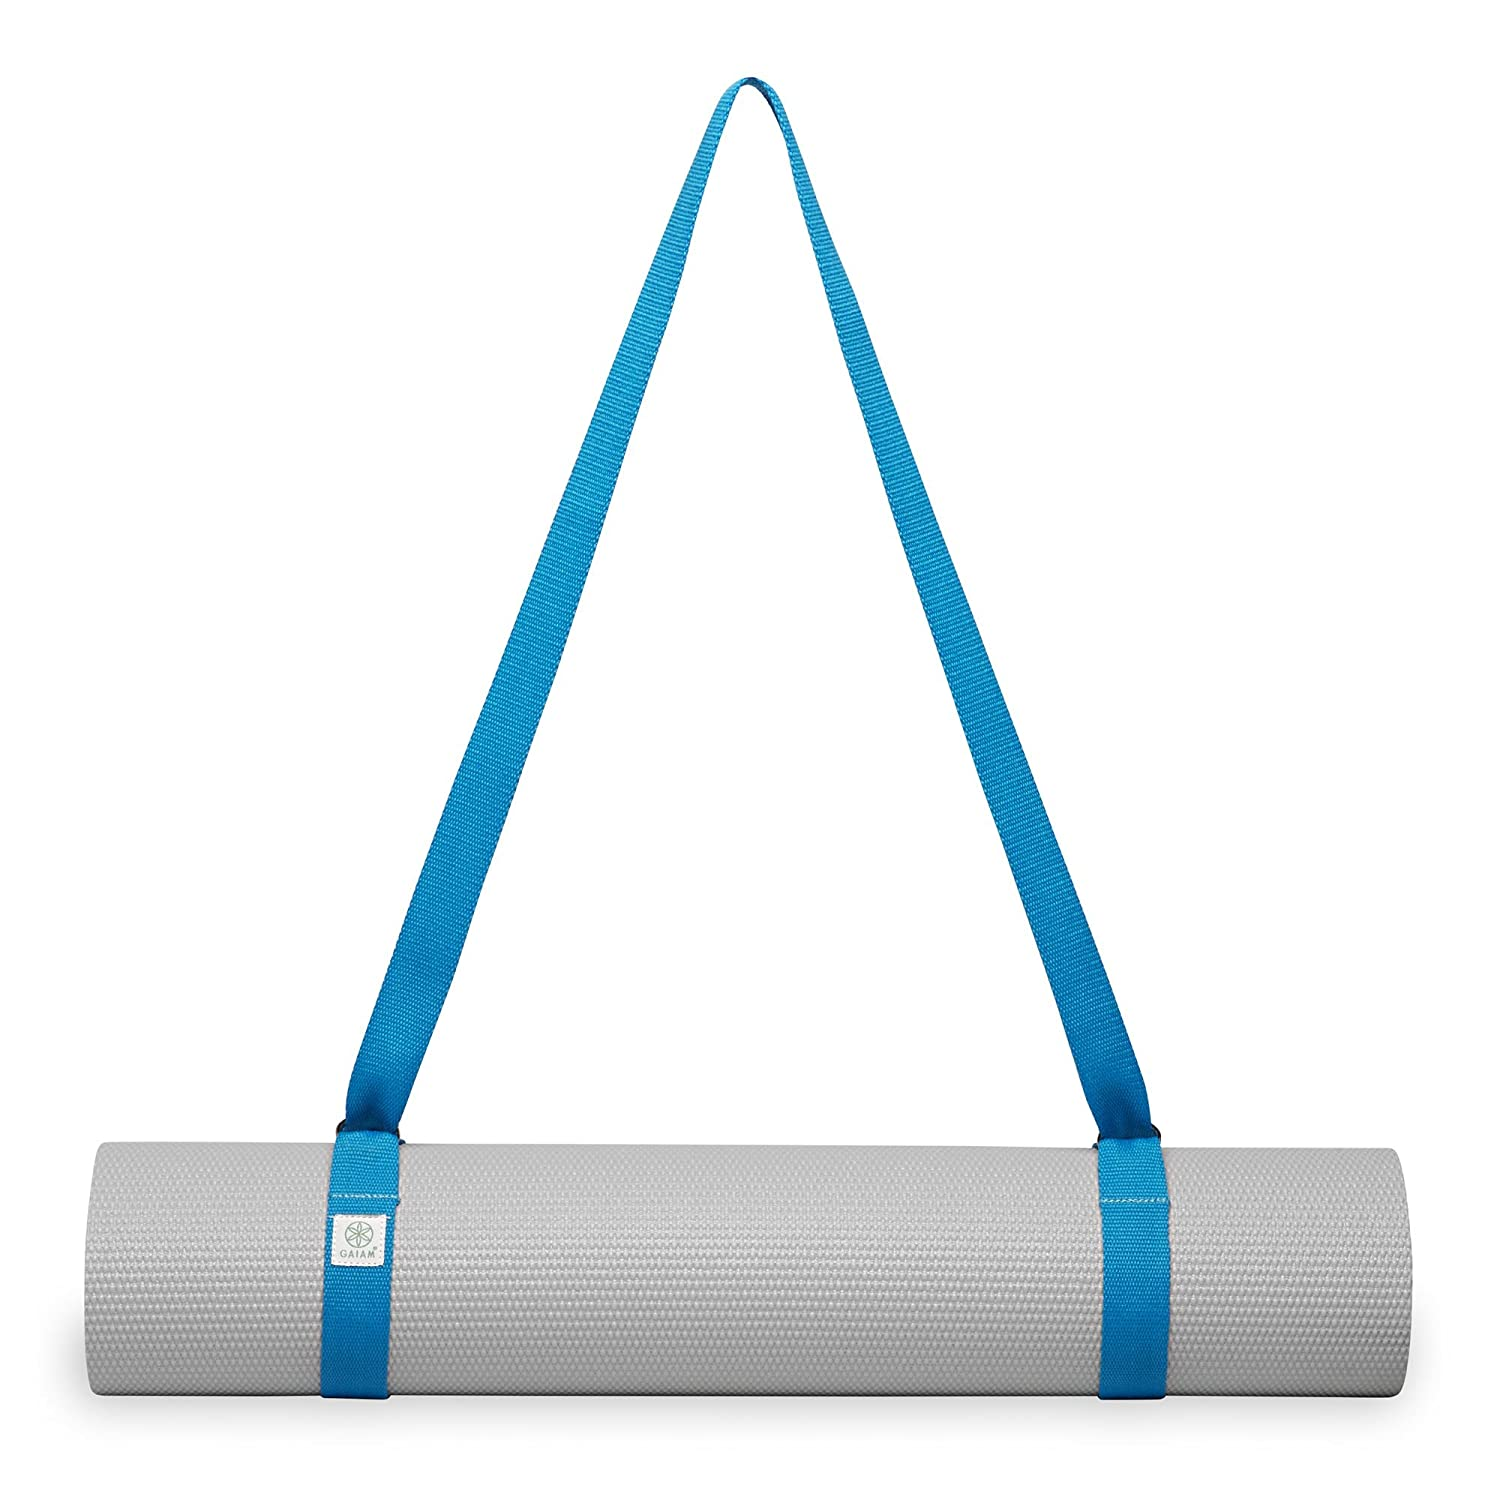 Picturesque Amazoncom  Gaiam Easycinch Yoga Mat Sling Sold Individually  With Likable Amazoncom  Gaiam Easycinch Yoga Mat Sling Sold Individually With  Assorted Colors Fuchsia Or Blue  Sports  Outdoors With Attractive Gardening Subscription Box Also Gardening Contractors In Addition Swinging Garden Seats And Garden Store London As Well As Hillside Garden Centre Additionally Sunsport Gardens Loxahatchee From Amazoncom With   Likable Amazoncom  Gaiam Easycinch Yoga Mat Sling Sold Individually  With Attractive Amazoncom  Gaiam Easycinch Yoga Mat Sling Sold Individually With  Assorted Colors Fuchsia Or Blue  Sports  Outdoors And Picturesque Gardening Subscription Box Also Gardening Contractors In Addition Swinging Garden Seats From Amazoncom